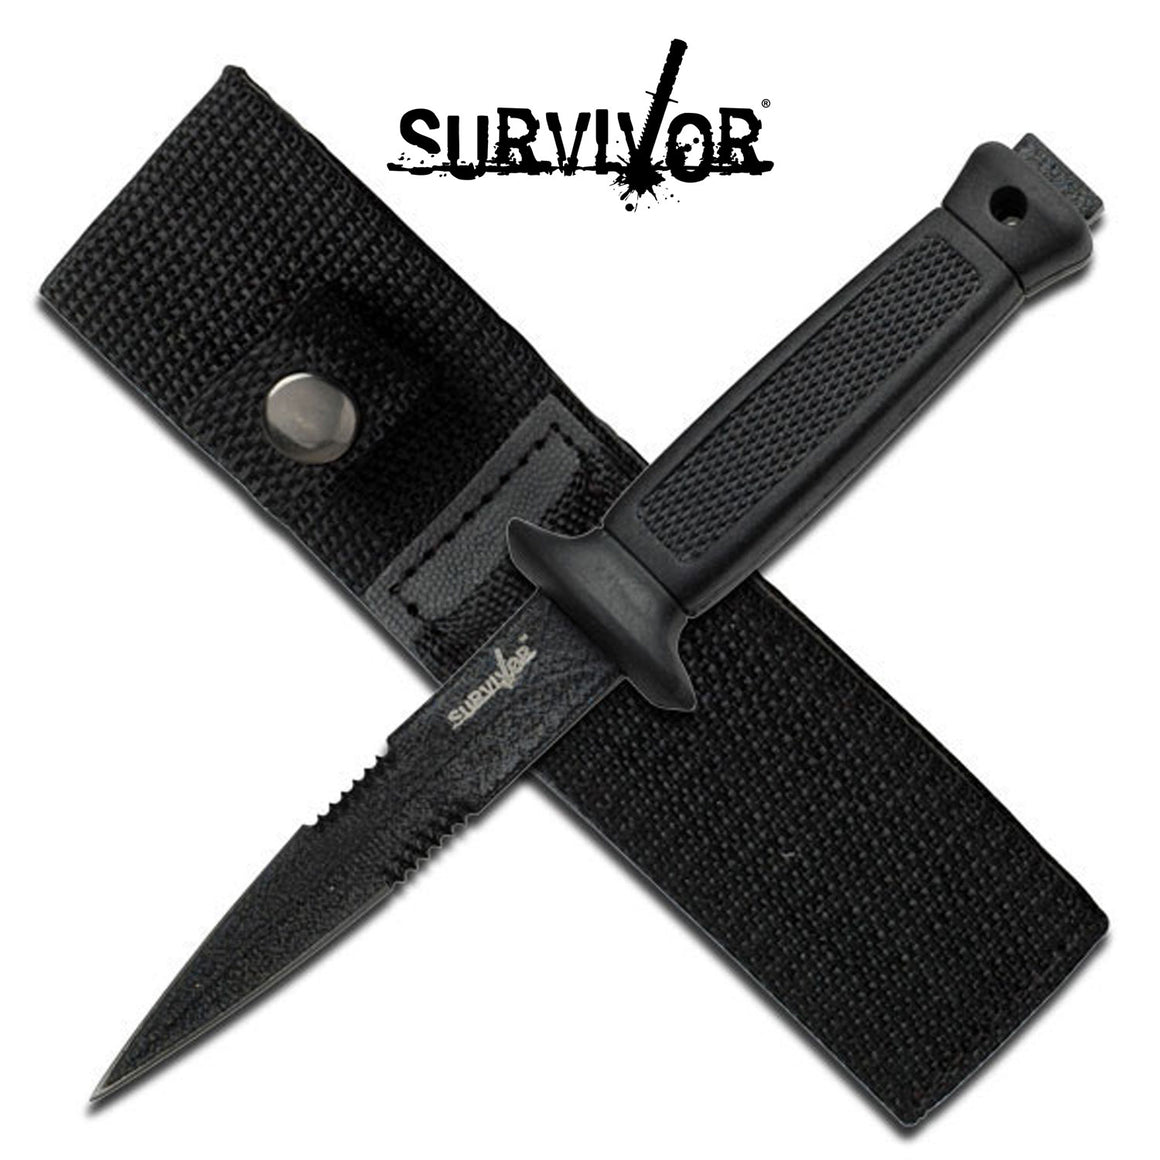 Survivor HK-740BK Fixed Blade Knife